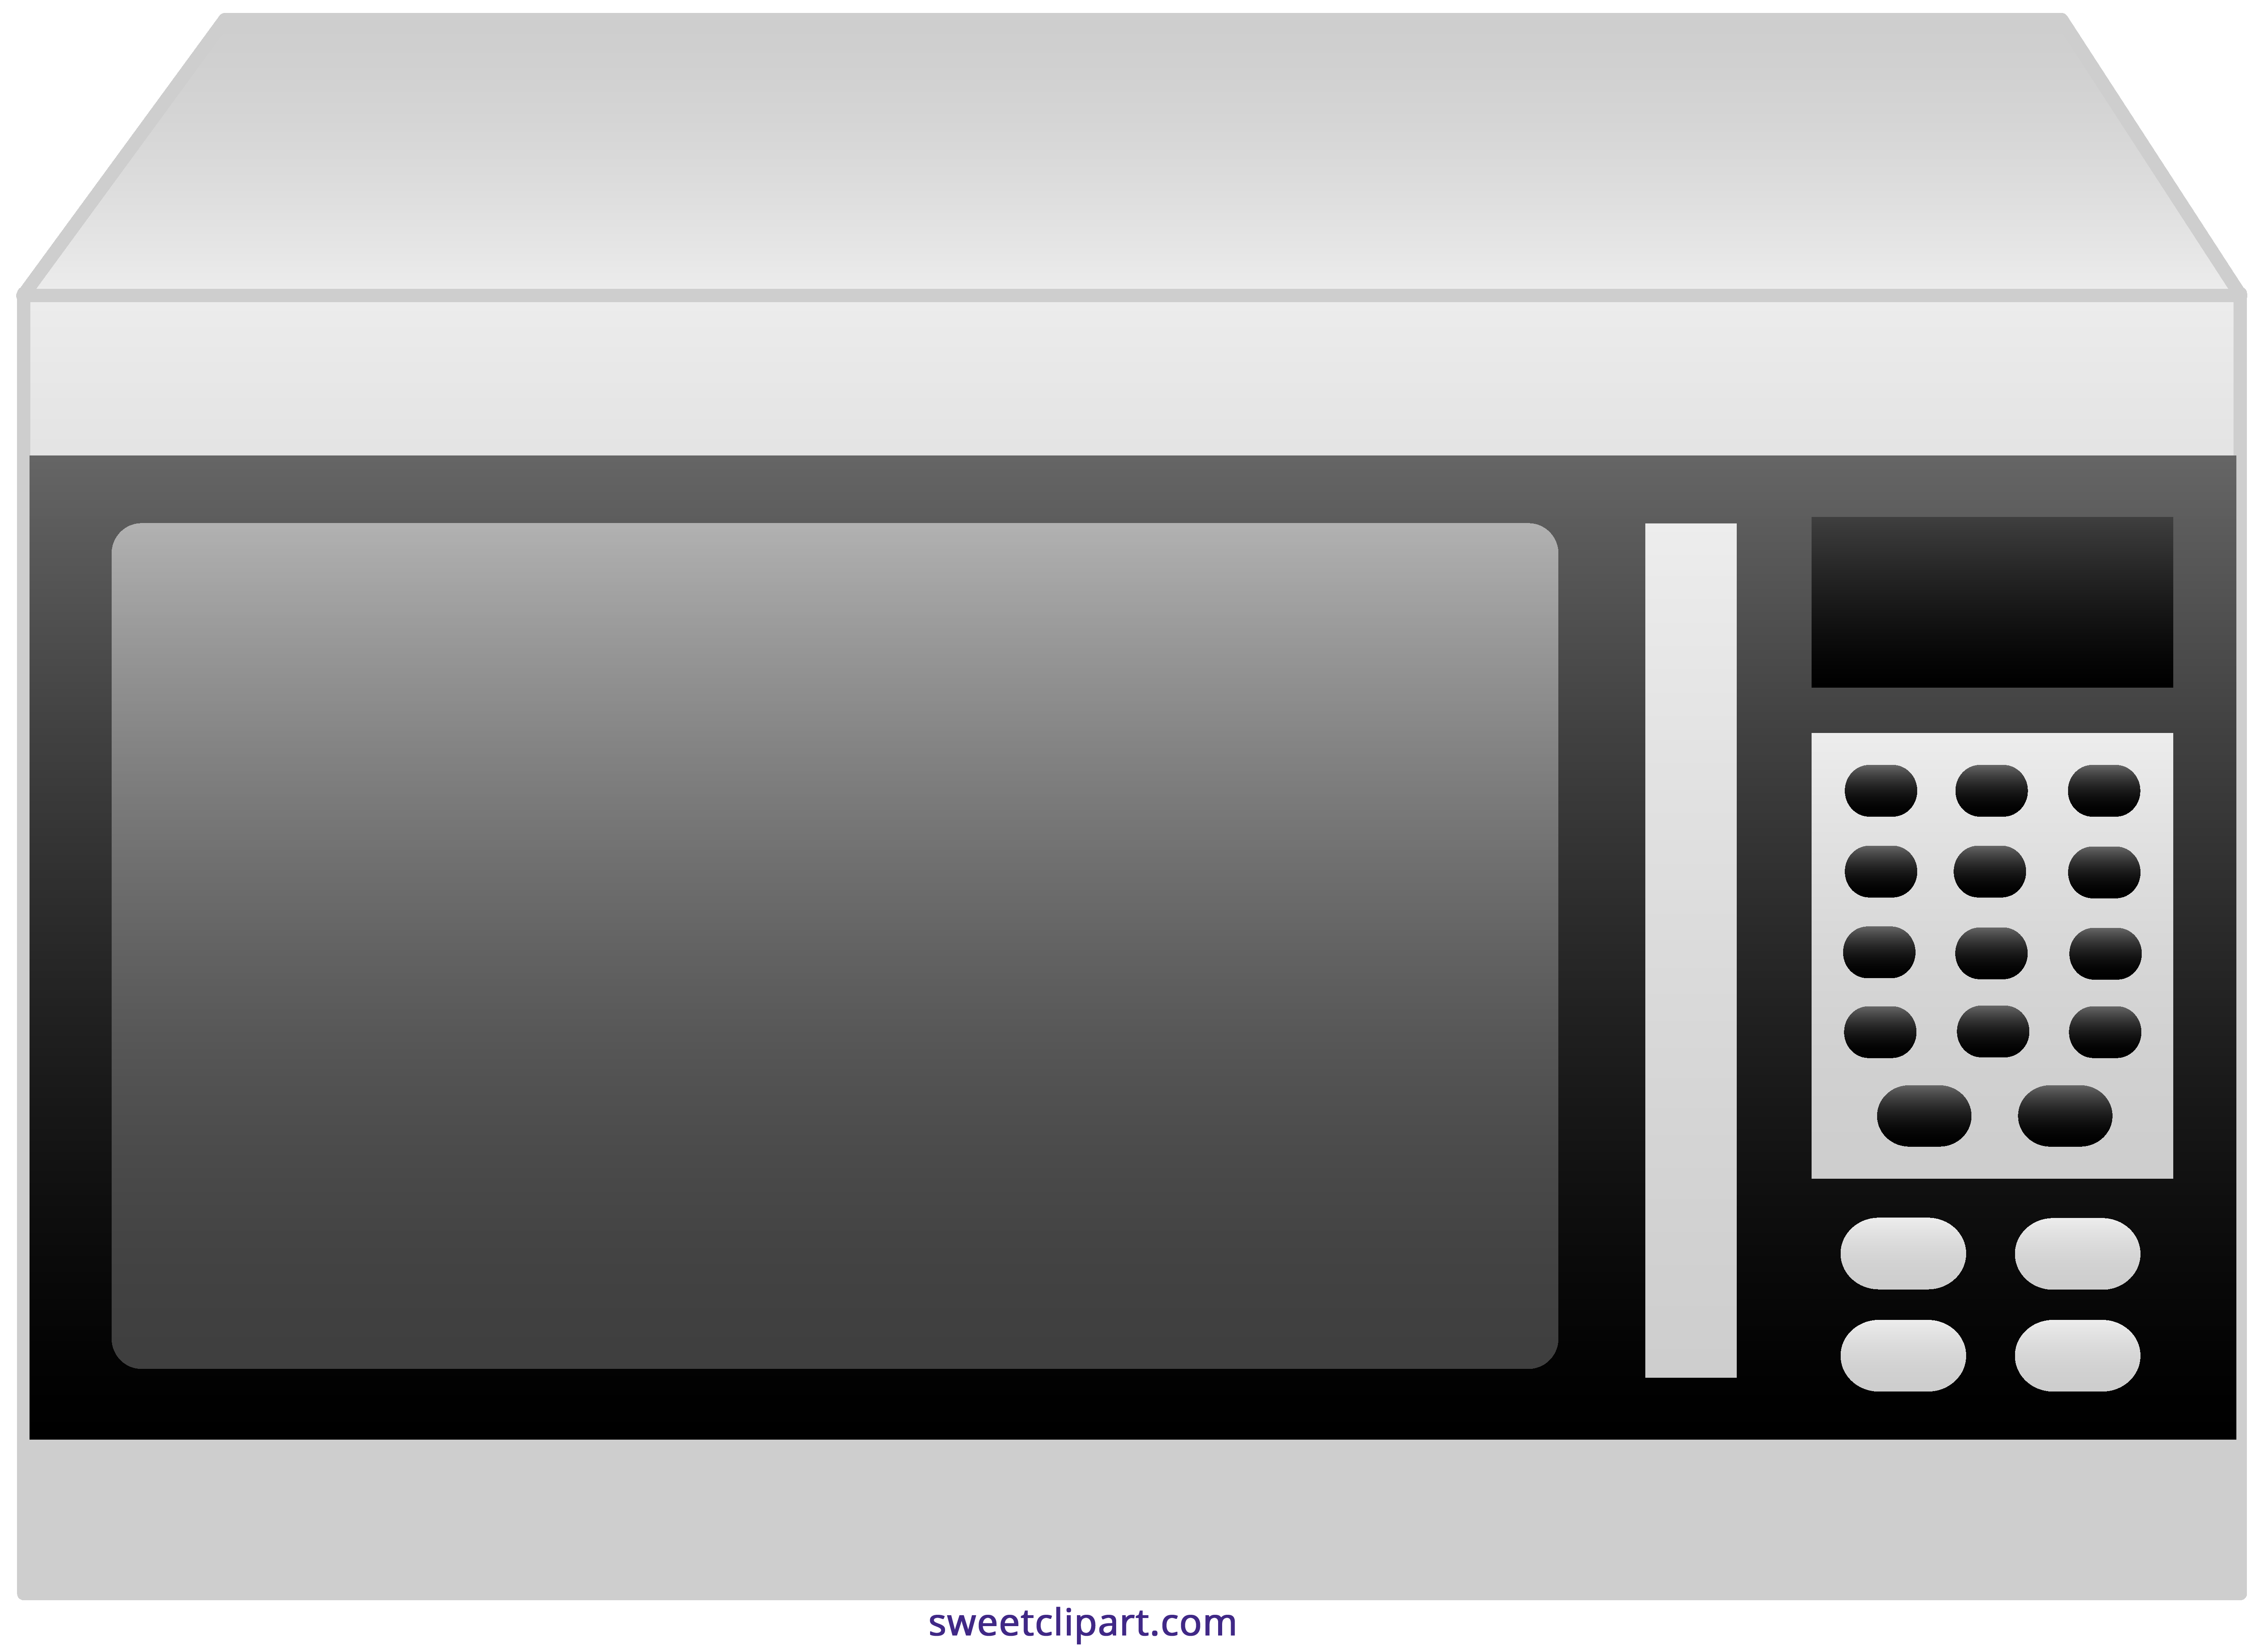 Microwave sweet clip art. Oven clipart